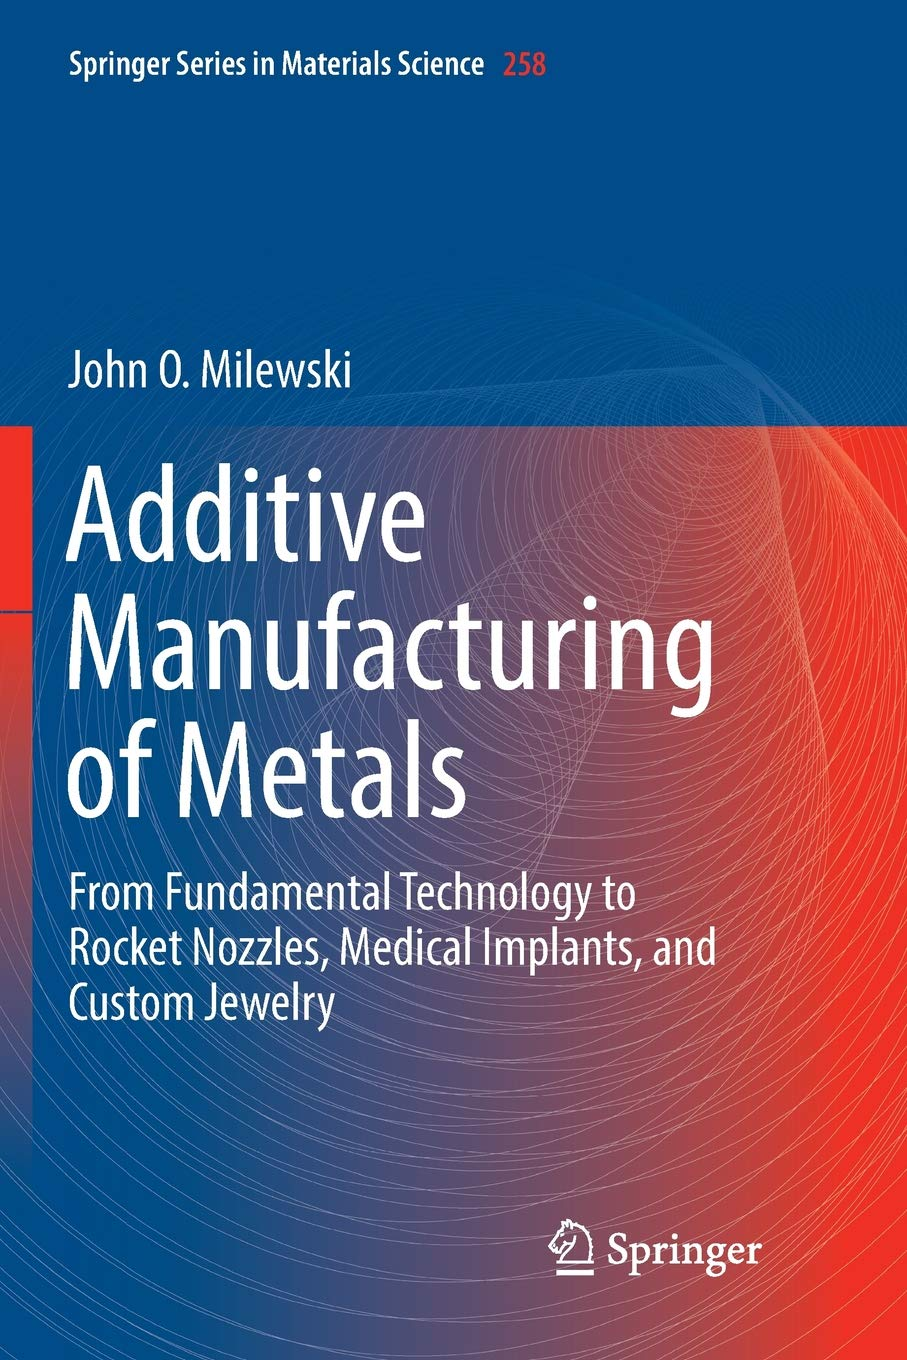 Additive Manufacturing of Metals: From Fundamental Technology to Rocket Nozzles, Medical Implants, and Custom Jewelry (Springer Series in Materials Science) por John O. Milewski